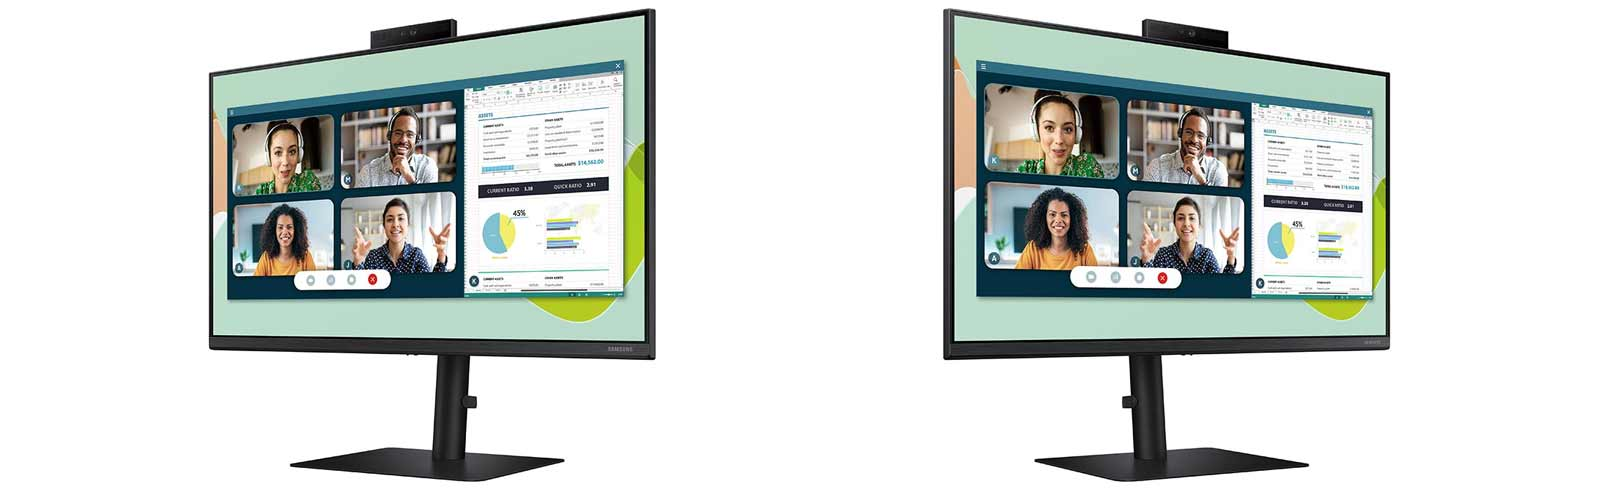 The Samsung 24S40VA is created for web conferencing, education, work, and entertainment